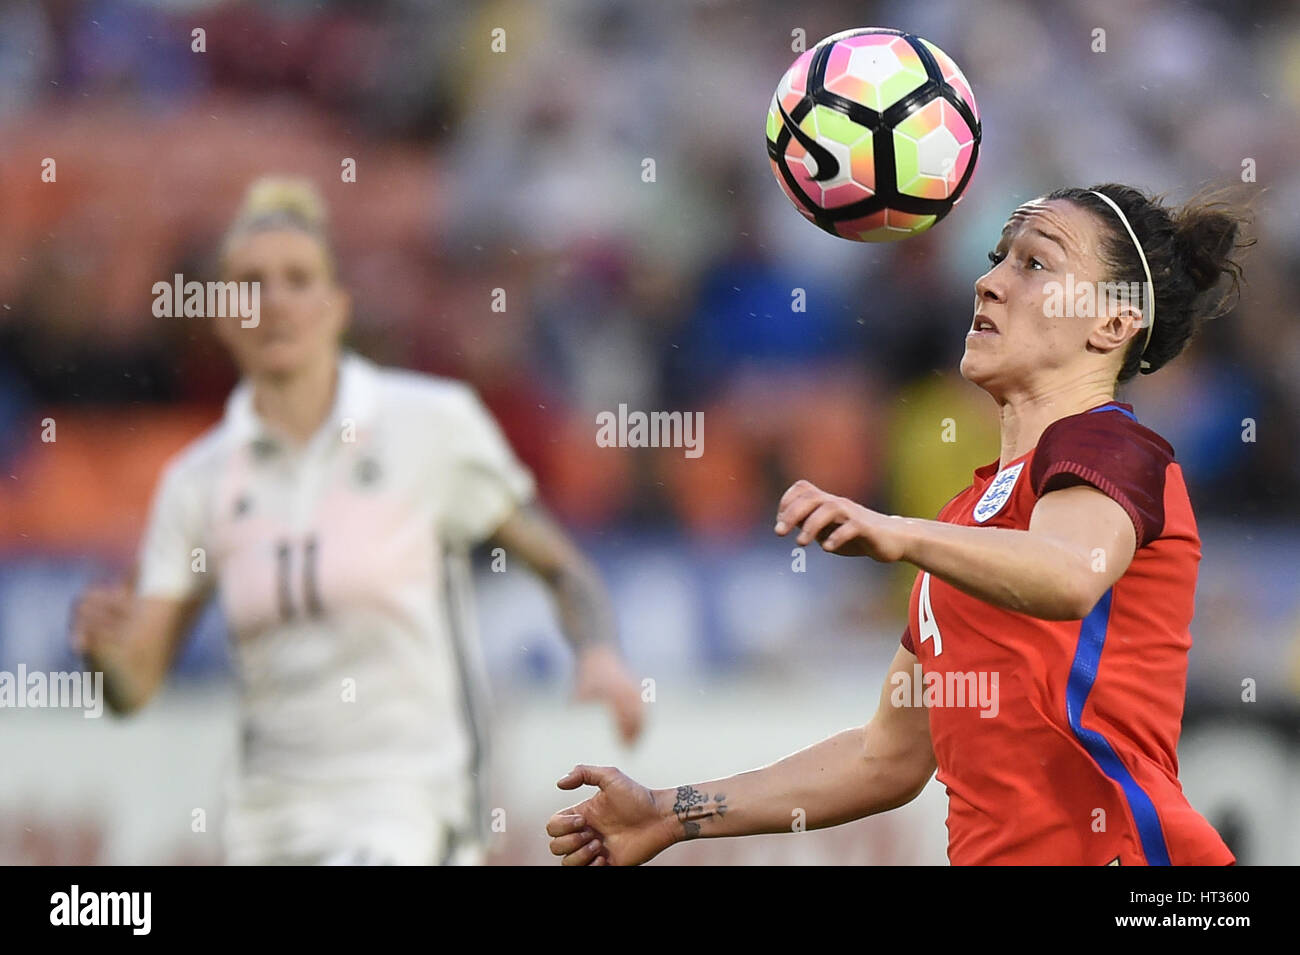 Washington DC, USA. 07Th Mar, 2017. Lucy l'Angleterre (4 bronze) conserve son œil sur la balle pendant le match Photo Stock